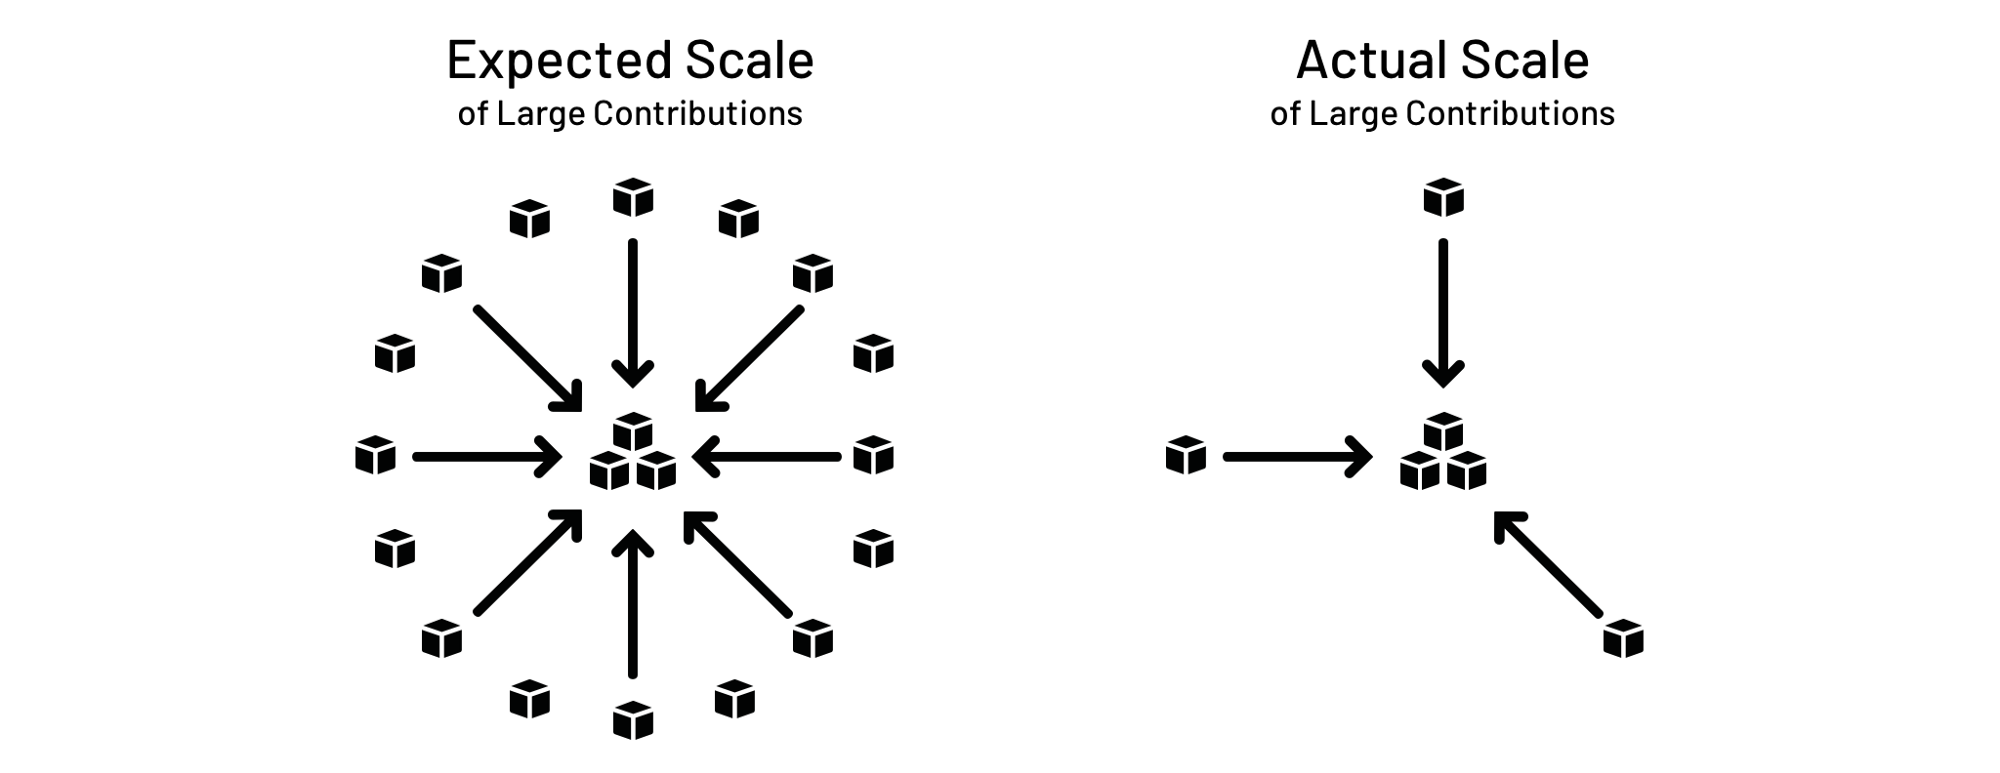 Diagram contrasting many expected contributions compared to actual.